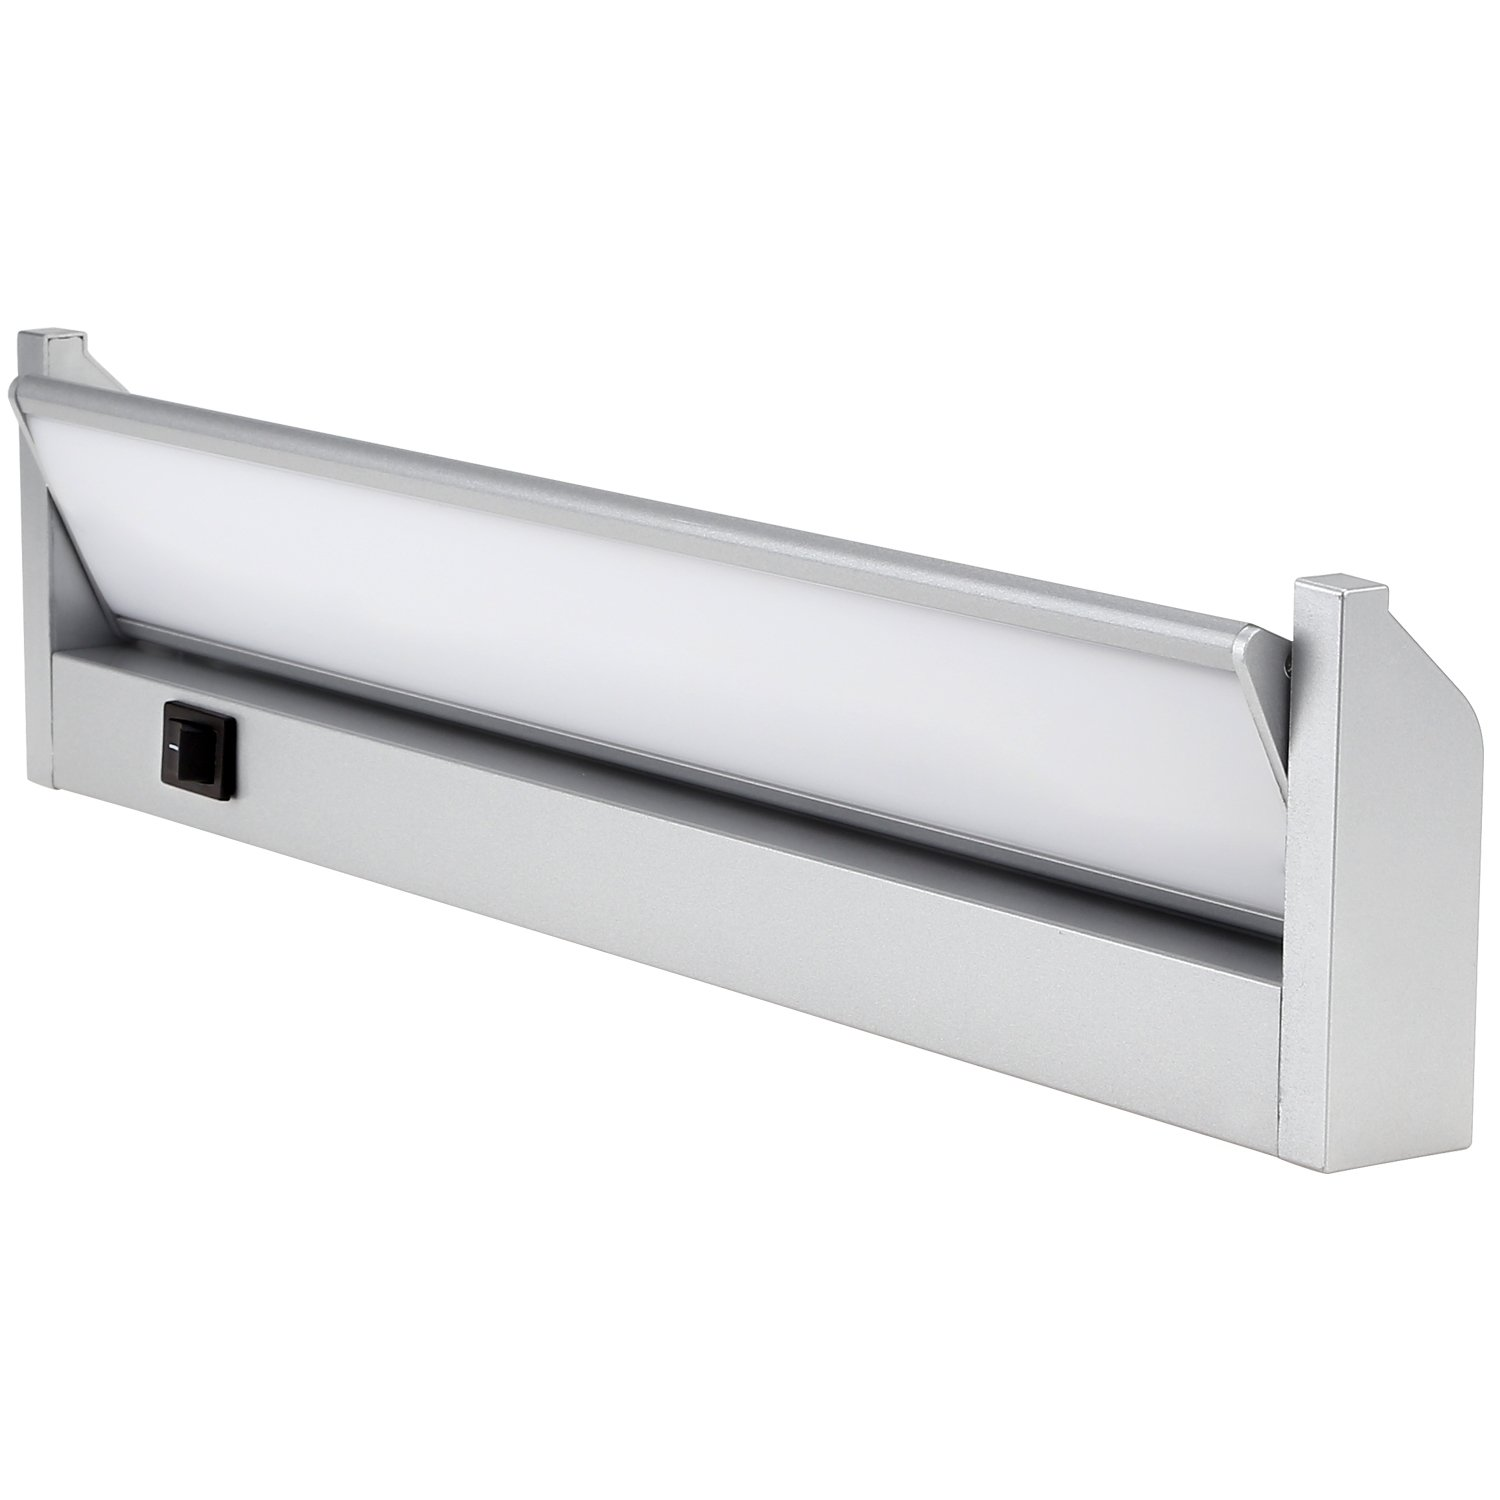 Multifunction LED Under Cabinet Lighting Fixture Hardwired Angle - Over the counter light fixtures